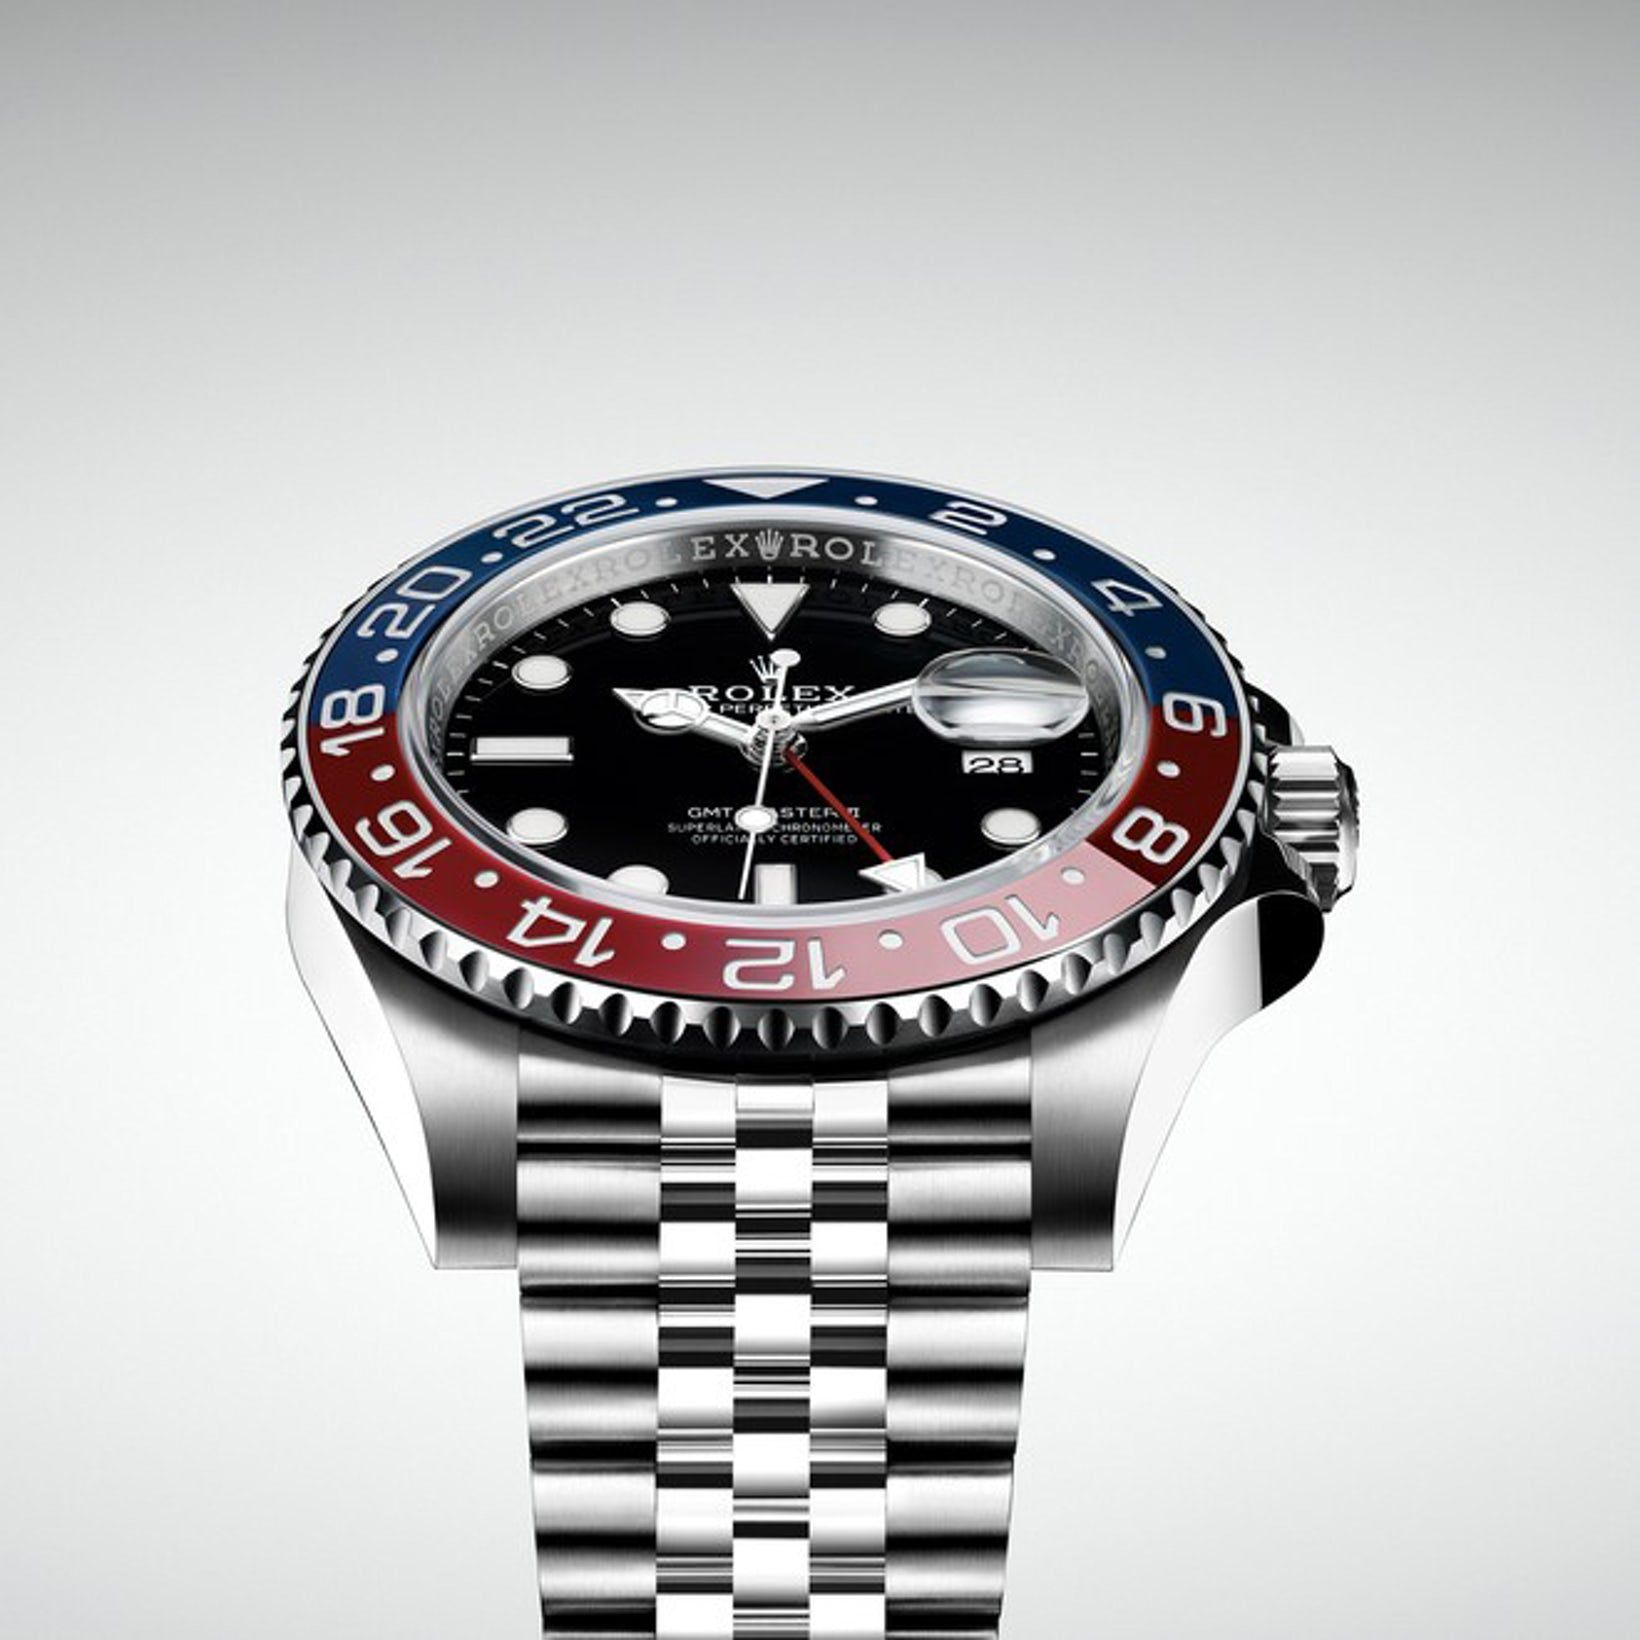 Introducing The Rolex Gmt Master Ii Pepsi In Stainless Steel Ref 126710 Blro